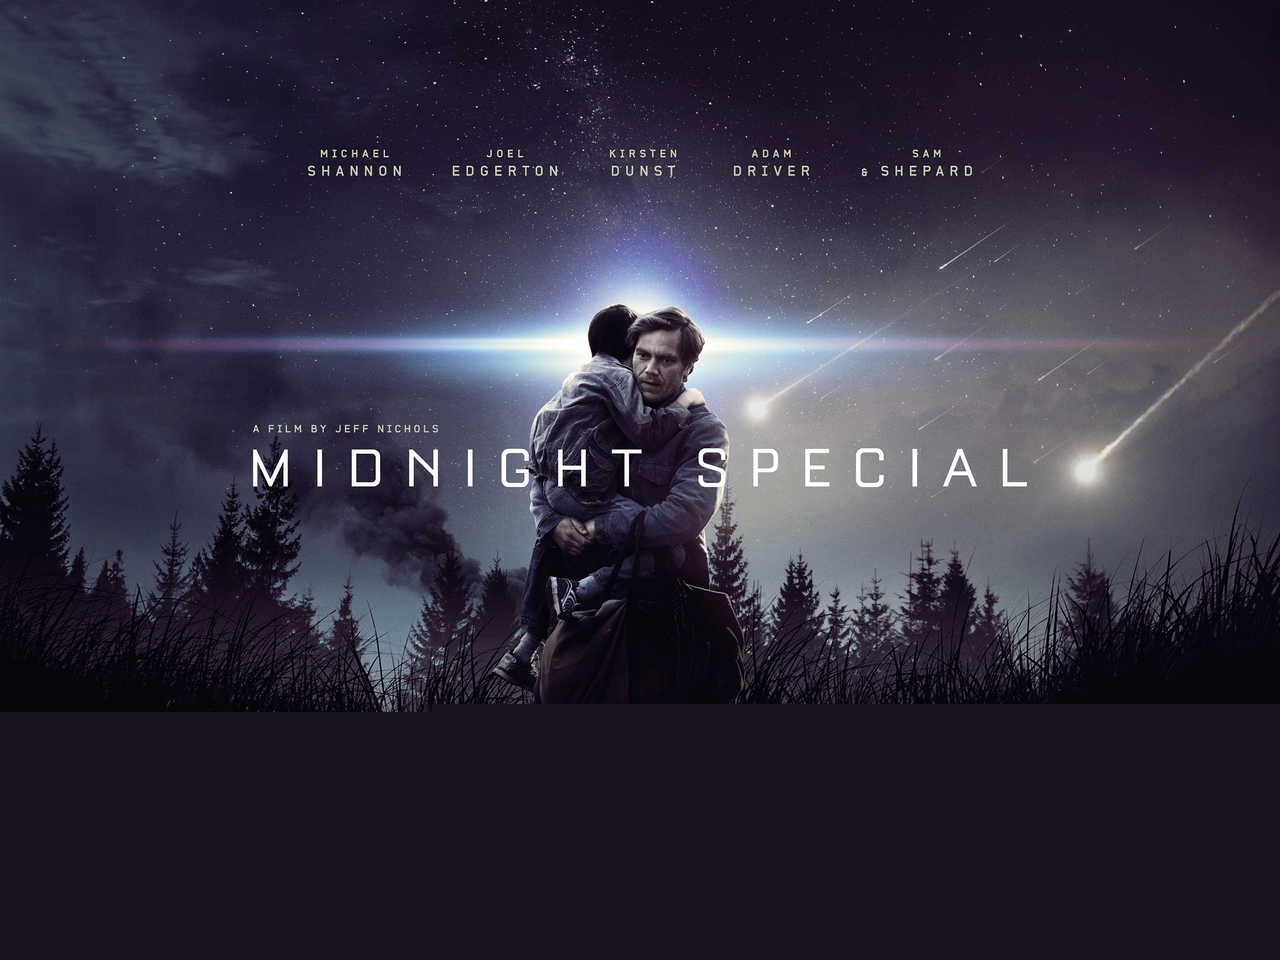 Midnight Special Trailer Shines A Neon-Blue Light On Michael Shannon's Father-Son Bond